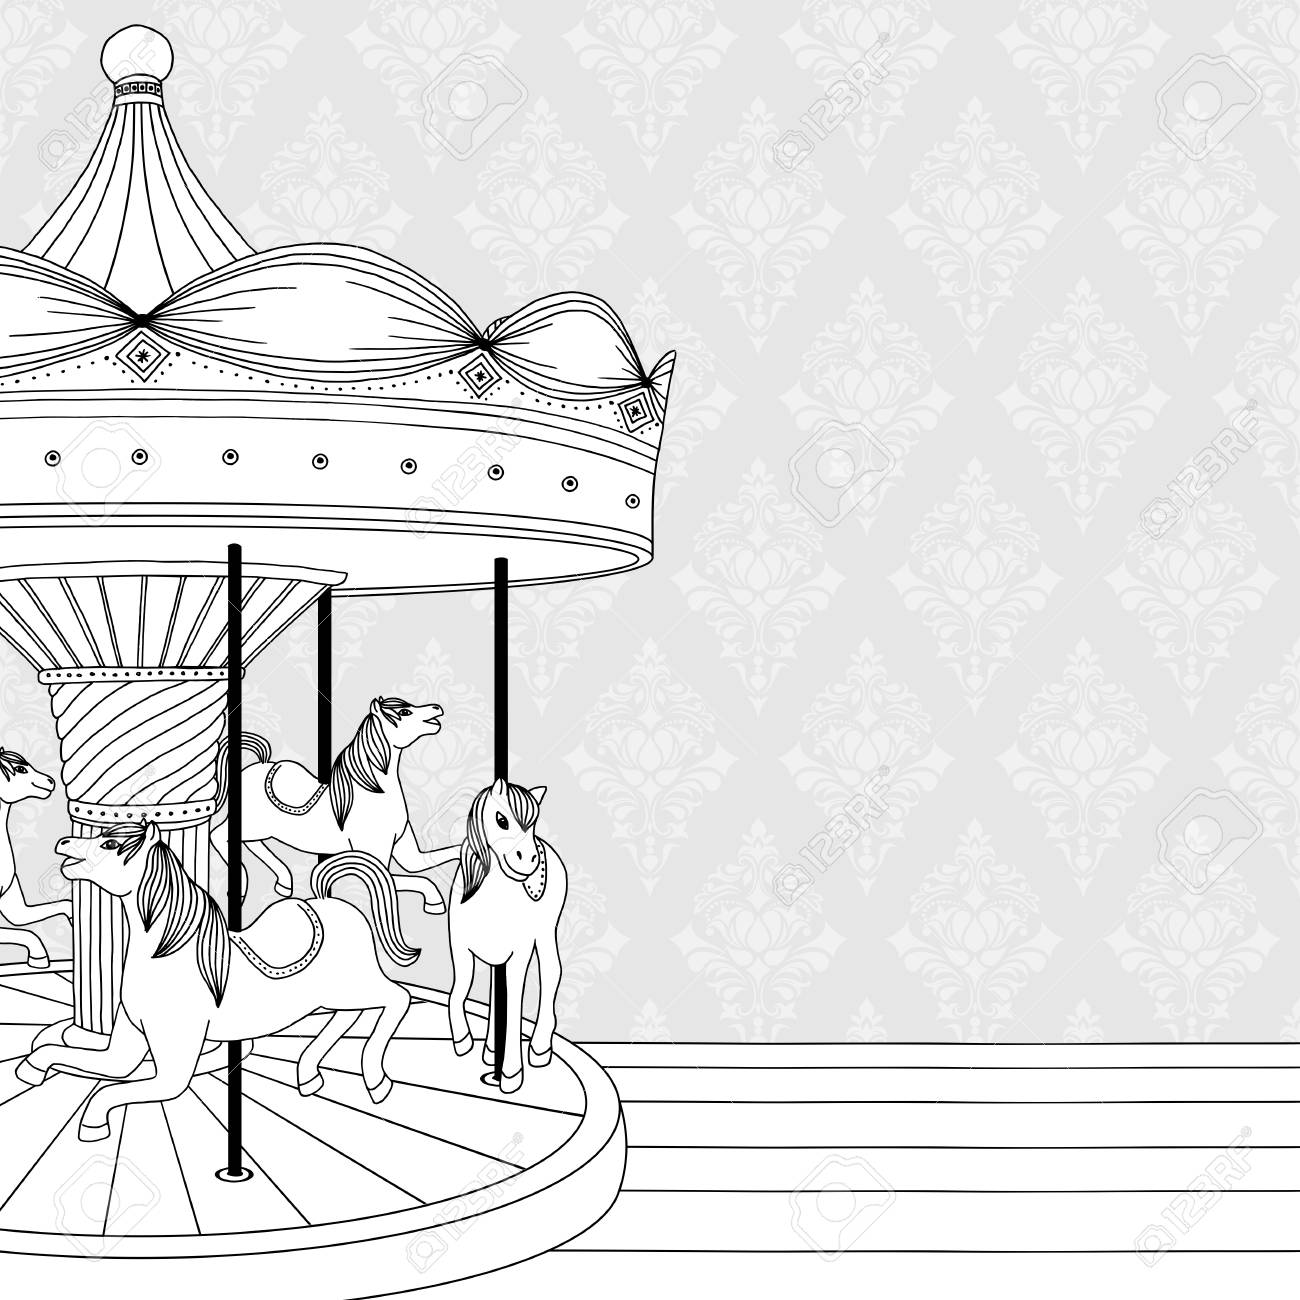 Hand drawn black and white illustration of a carousel with horses,..